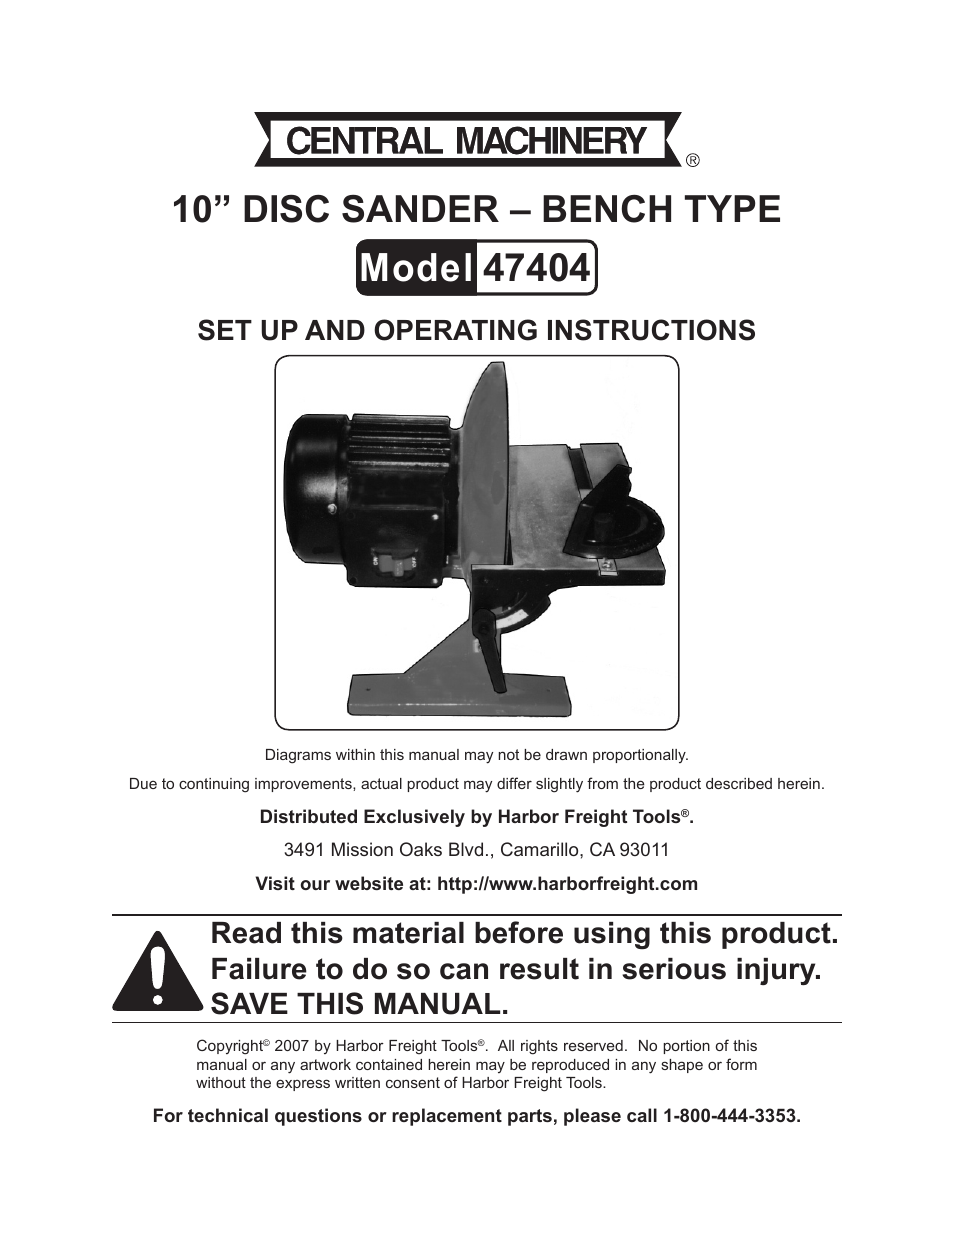 Harbor freight tools central machinery 10 disc sander for 10 table saw harbor freight